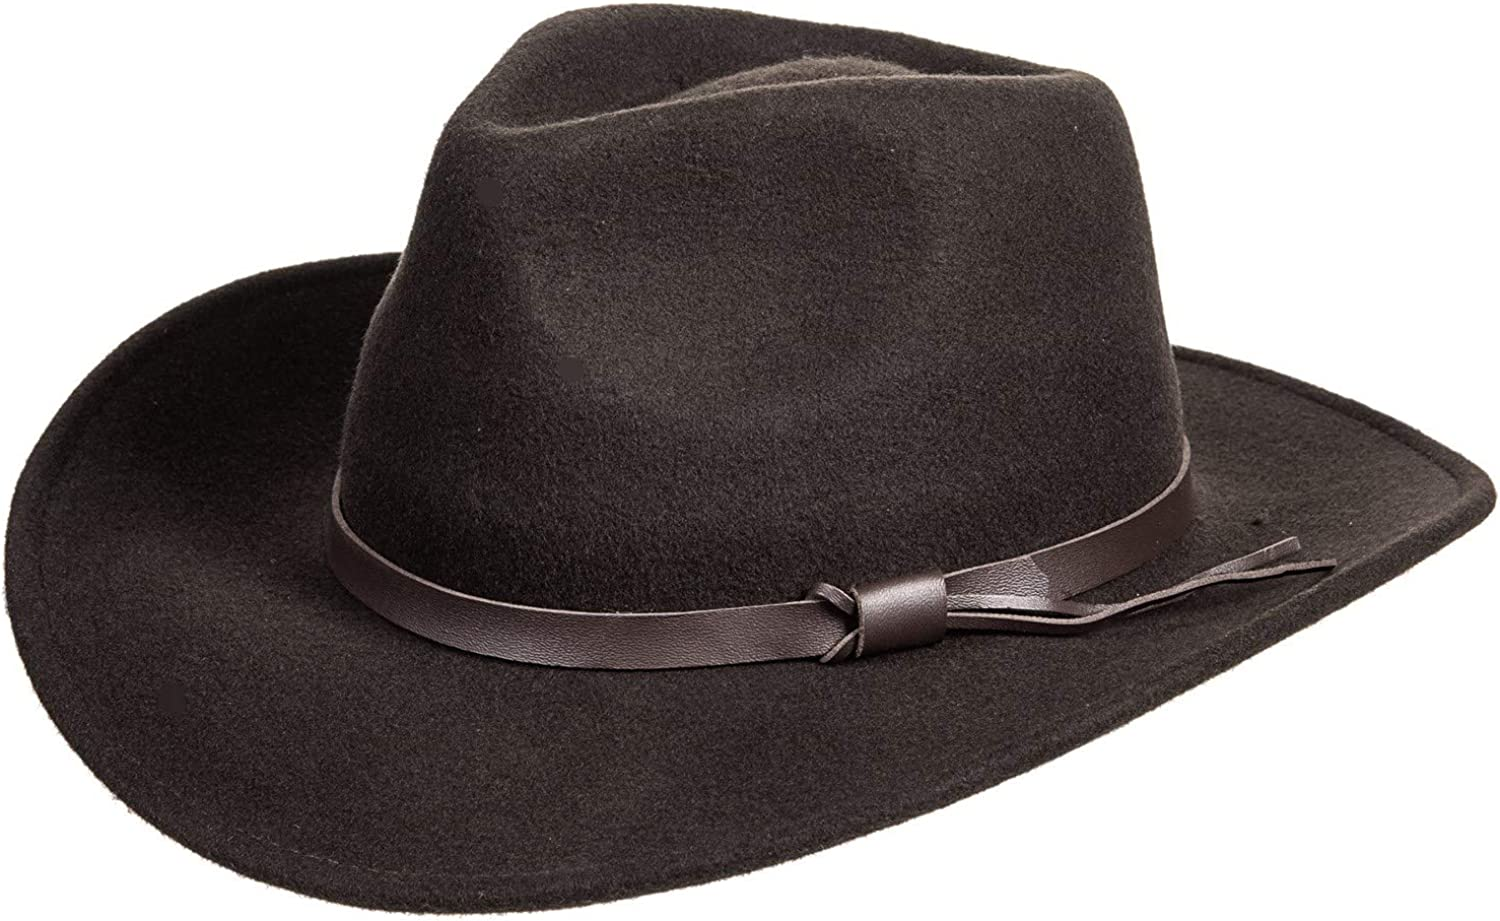 NEW MAGELLAN OUTDOORS CRUSHABLE 100/% WOOL FELT OUTBACK HAT BROWN SMALL//MED SIZE